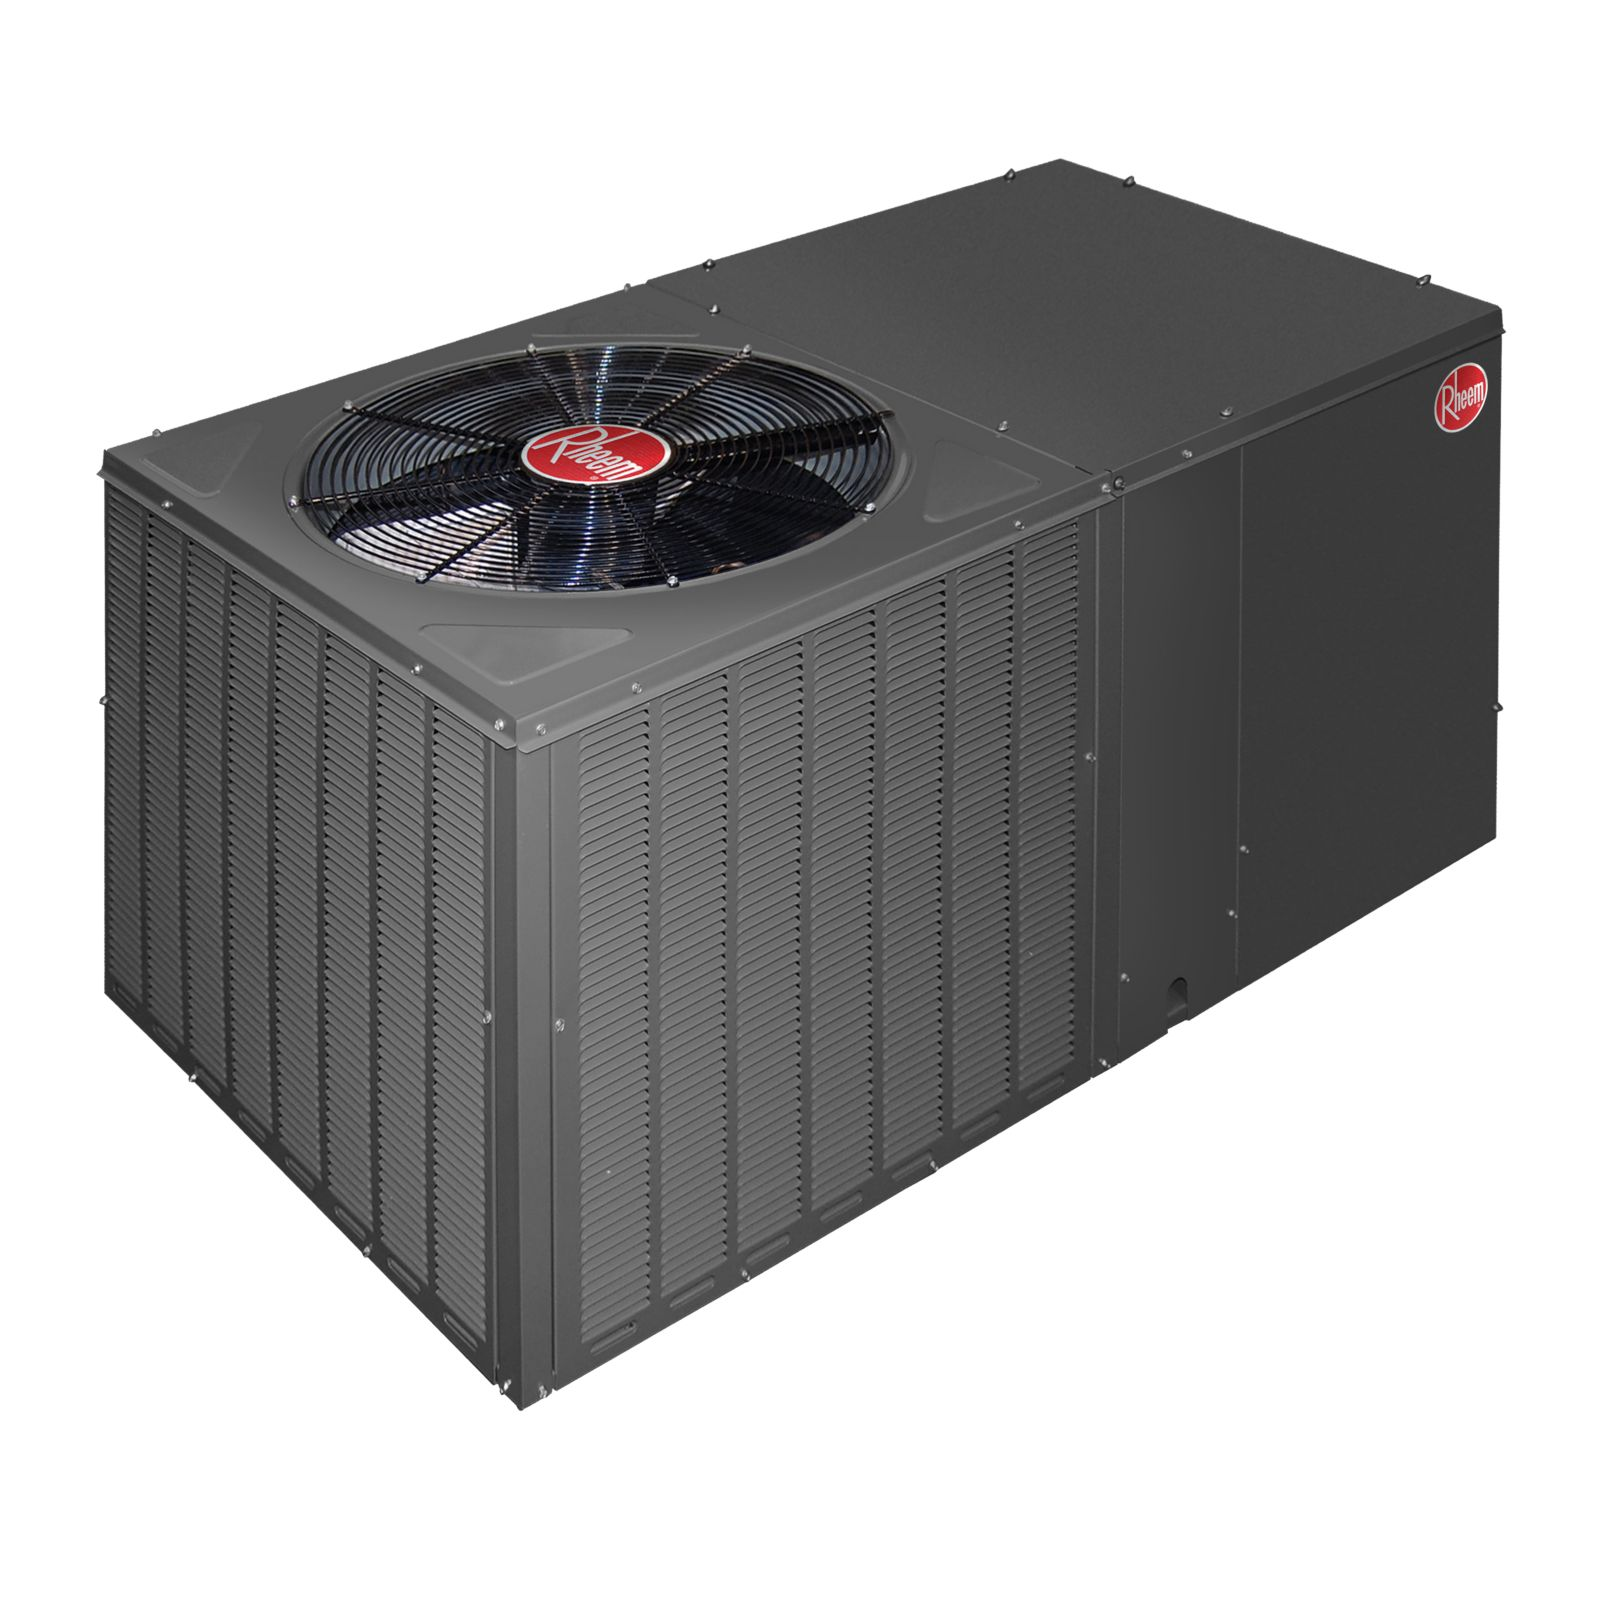 Rheem RQRM-A030JK000AUA - Classic 2 1/2 Ton 15/16 SEER, R-410A, Packaged Heat Pump With Horizontal Discharge